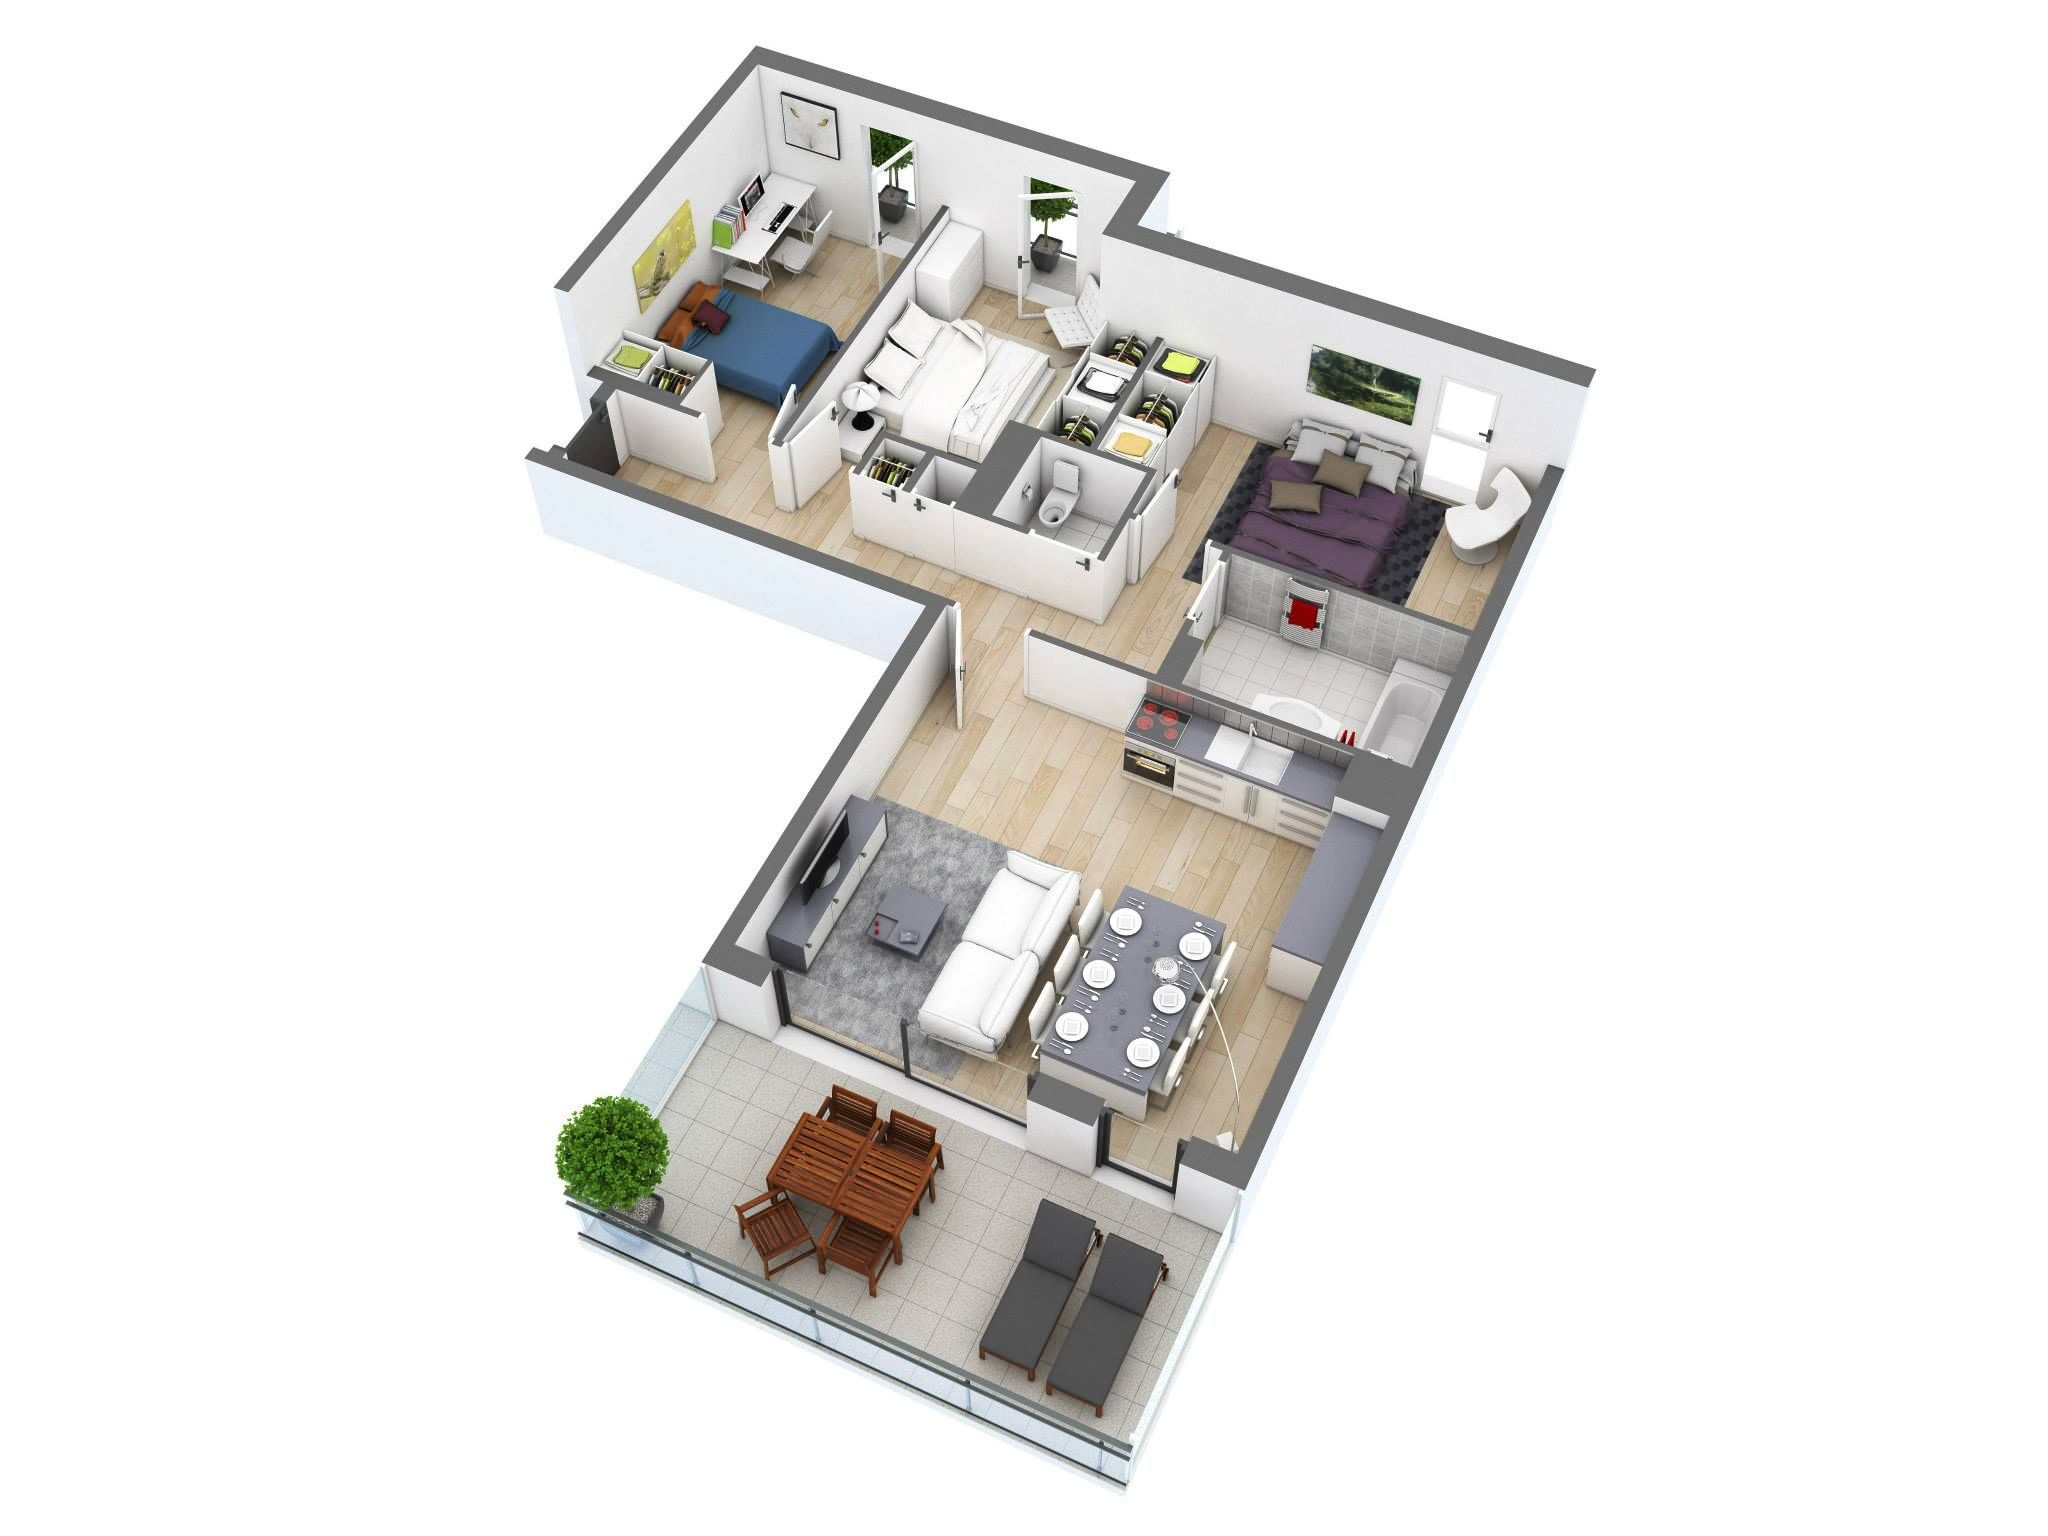 Understanding 3D Floor Plans And Finding The Right Layout For You on 3d house blueprints, best 3 bedroom house plans, beach 3 bedroom house plans, 1 story 3 bedroom house plans, 4-bedroom modular floor plans, apartment 2 bedroom house plans, 3d bedroom cartoon, ghana 3 bedroom house plans, single story 3 bedroom house plans, modern small house plans, loft house plans, 3d bedroom design, 1200 sq foot 2 bedroom house plans, 3 bedroom 1 floor plans, 3d cartoon house, 3d 2 bedroom narrow home, 3-bedroom ranch house plans, google tiny house plans, three bedroom country house plans, 3 bed 2.5 house plans,